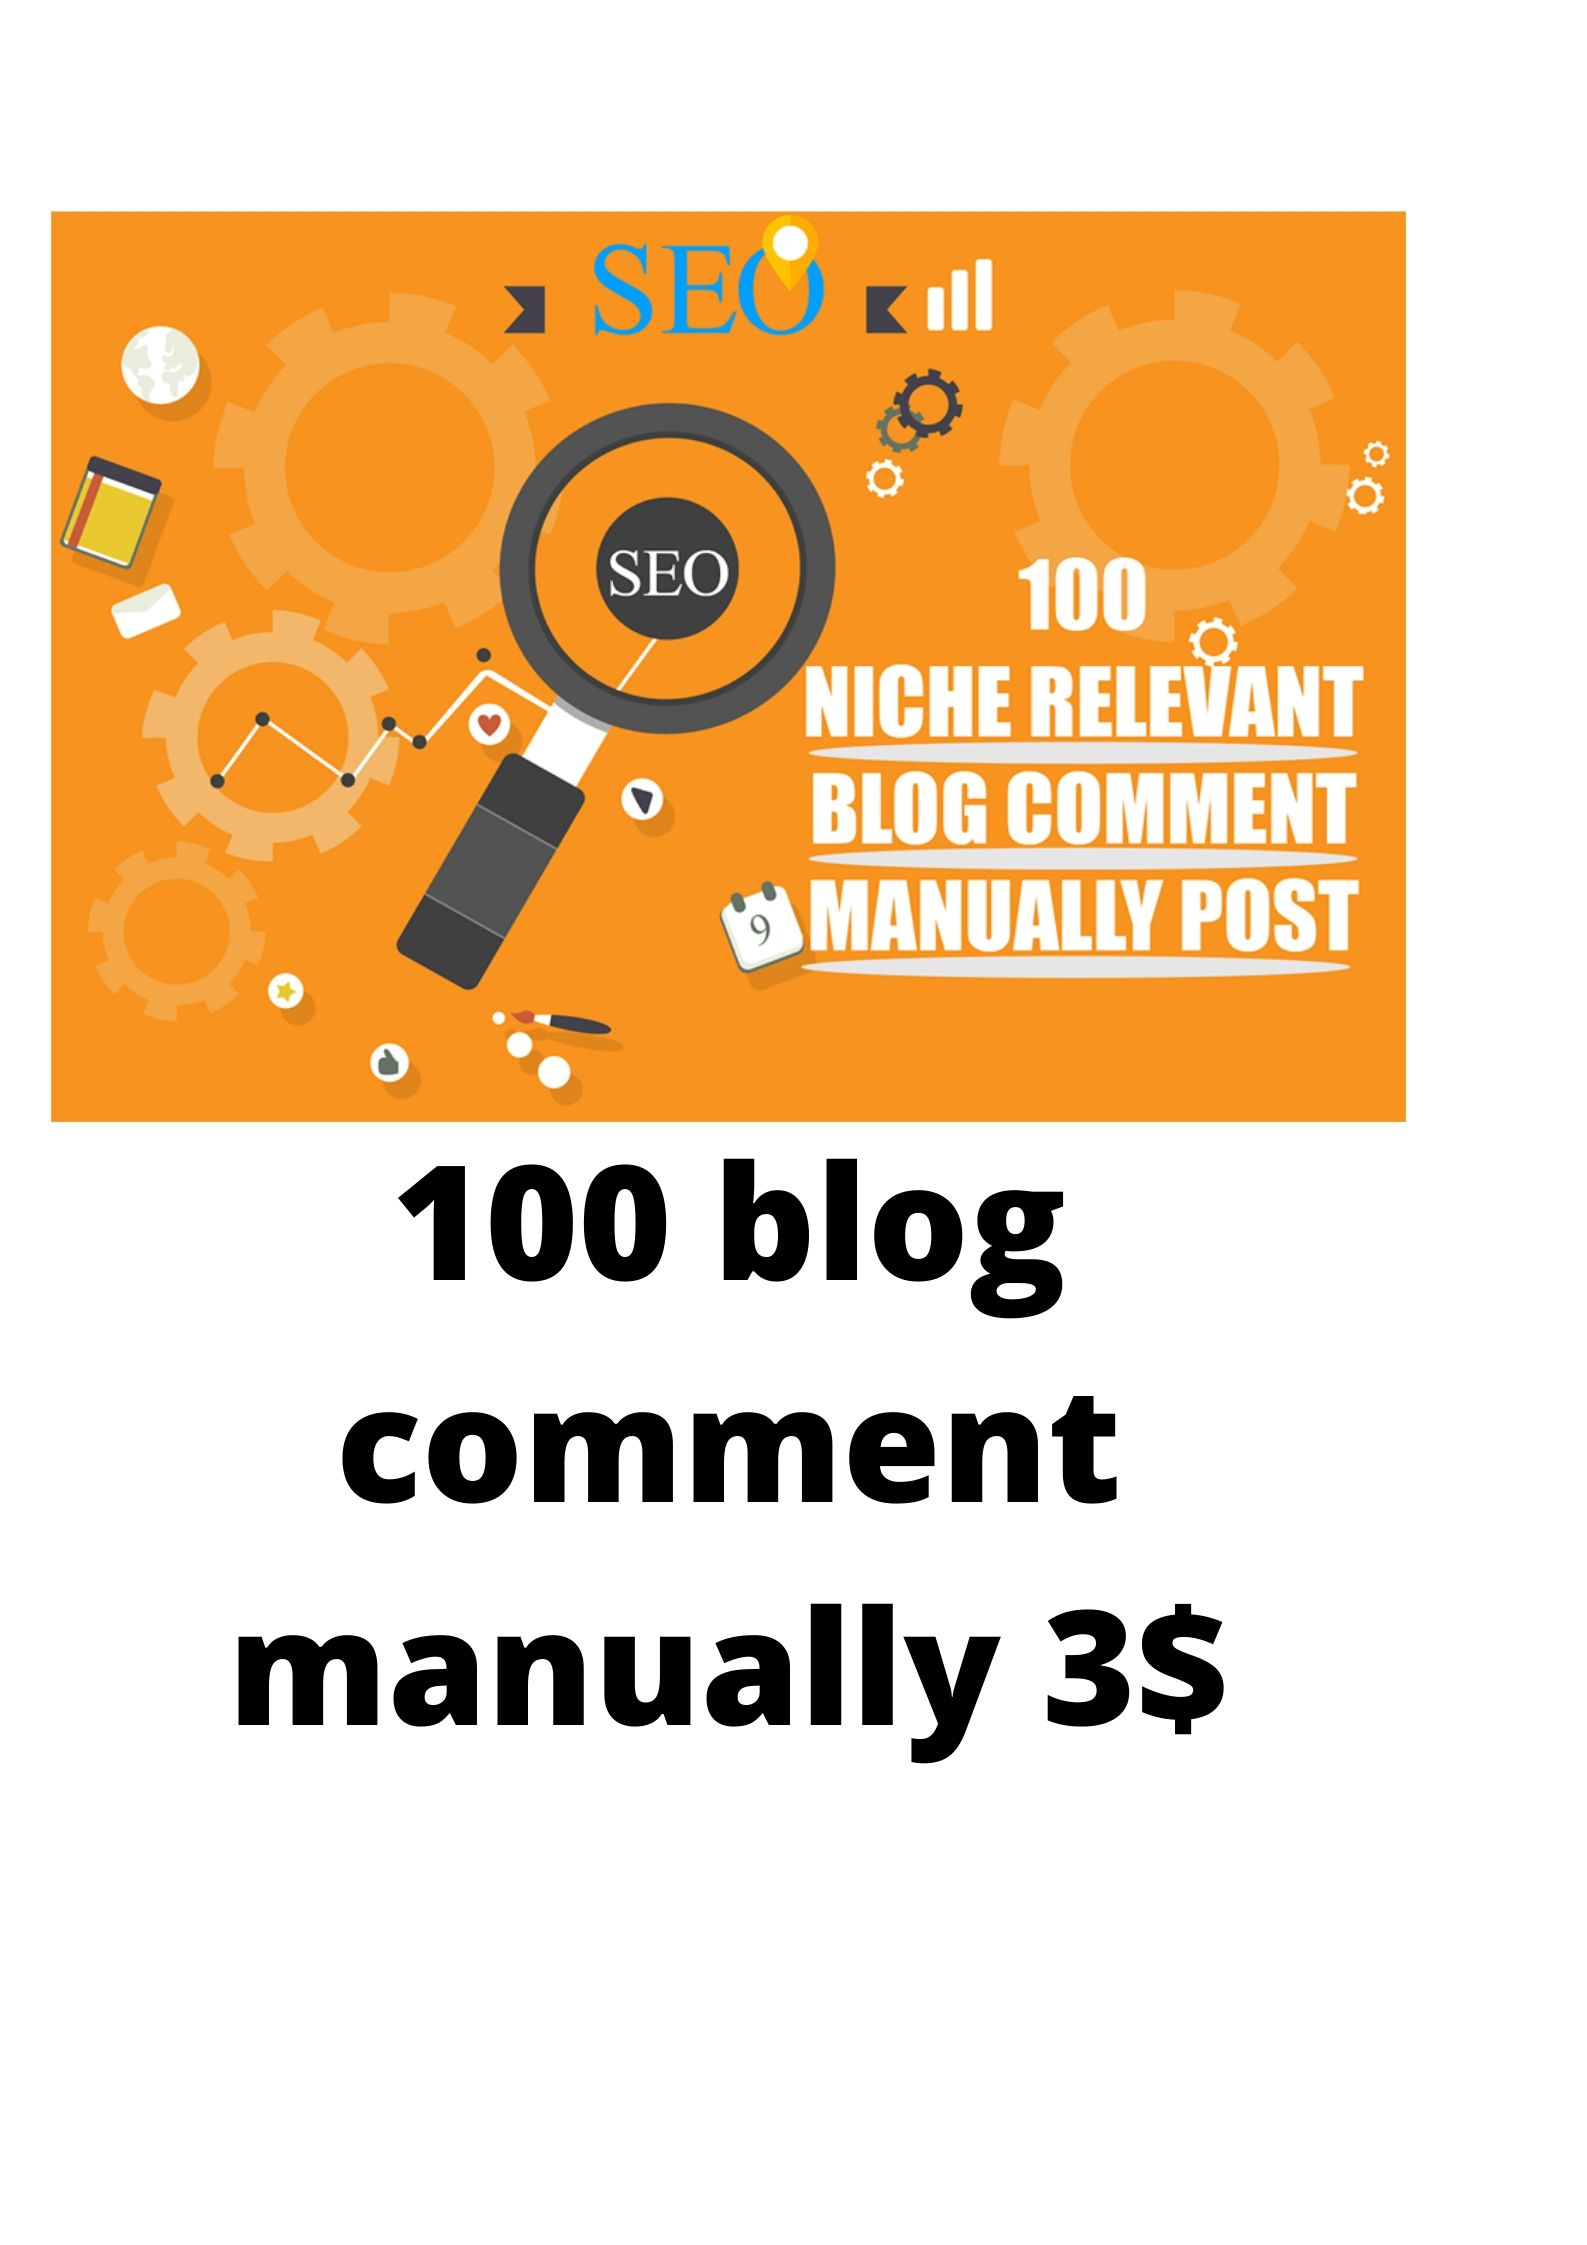 100 Blog Comment Done By Manually